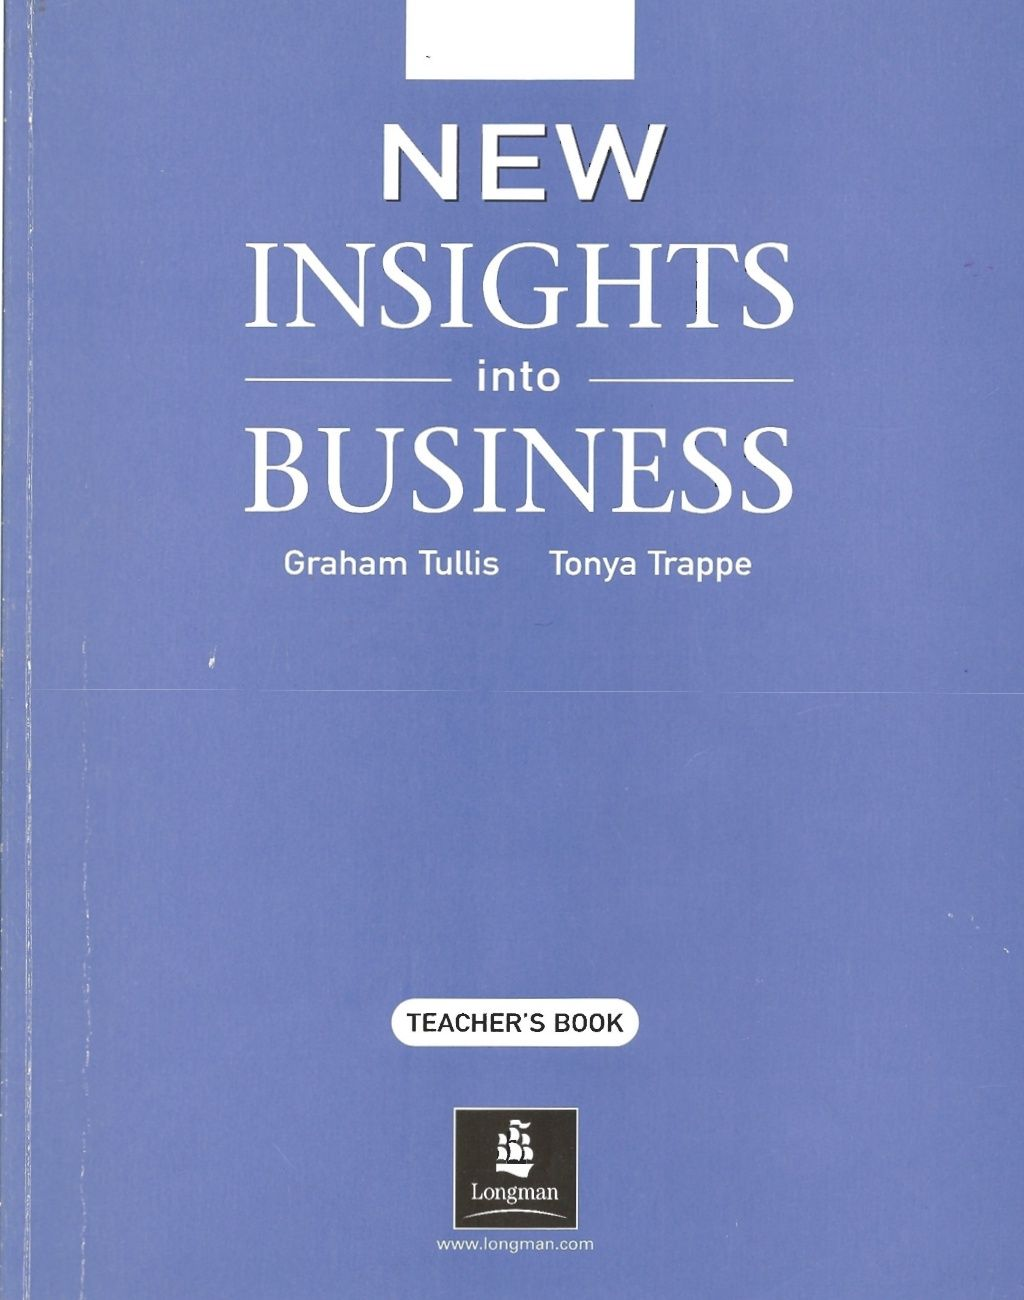 New insights into business teachers book by margo26 via slideshare new insights into business teachers book by via slideshare fandeluxe Images